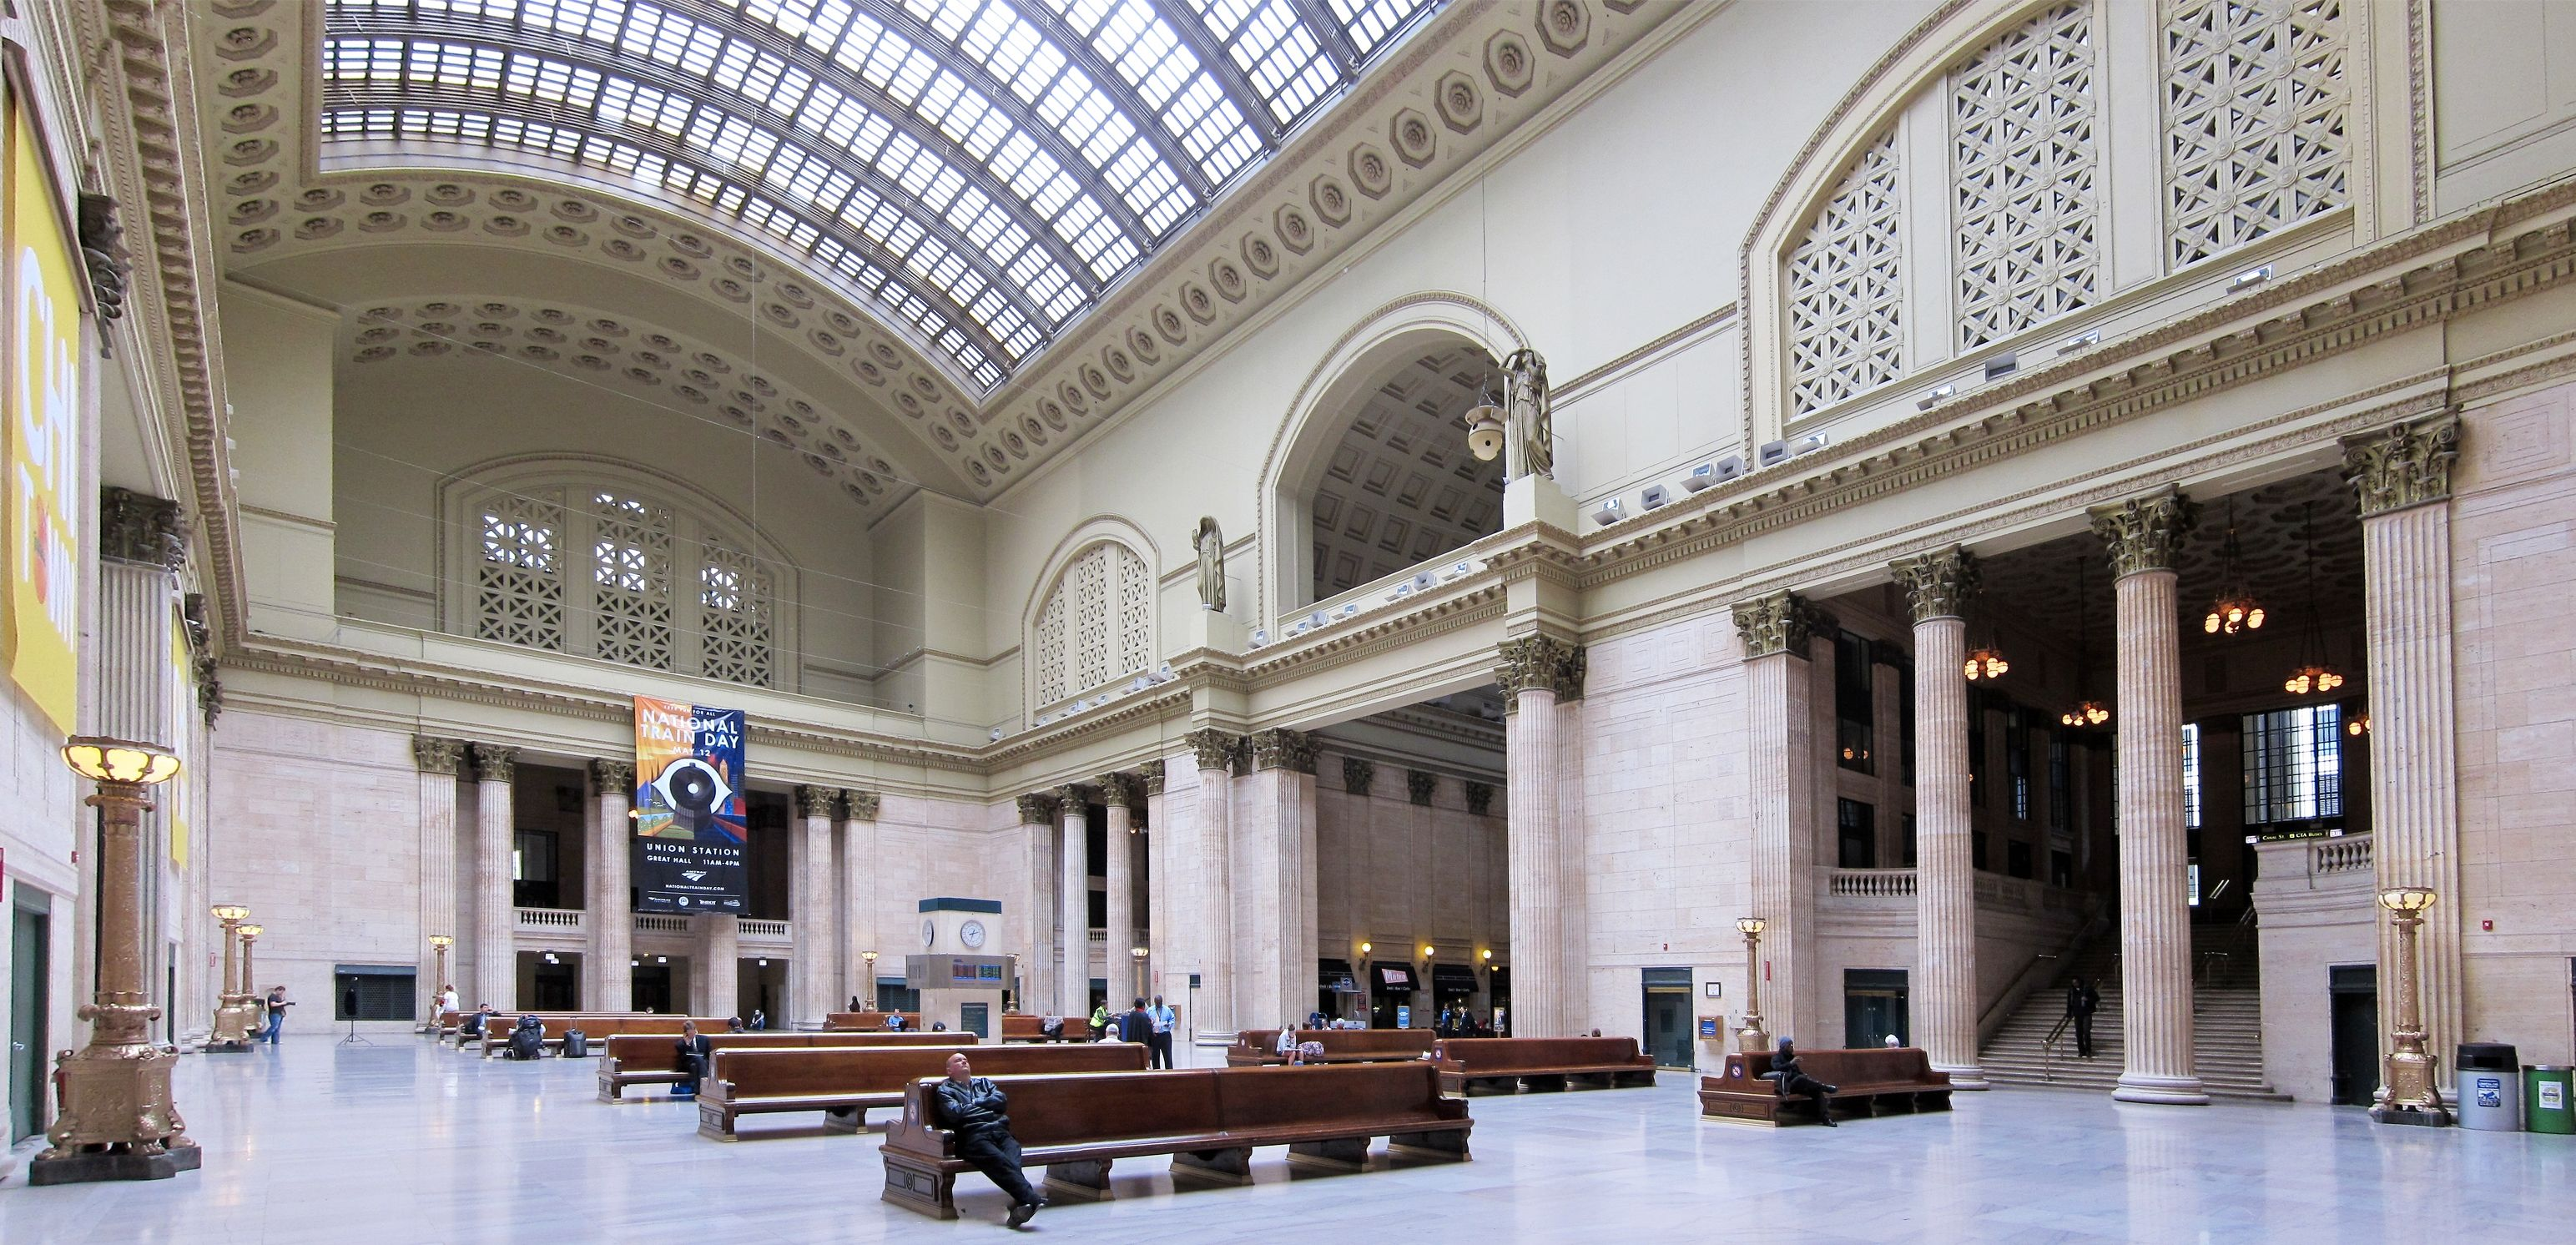 Union Station Chicago Map Google Search AC  Pinterest - Chicago map from union station